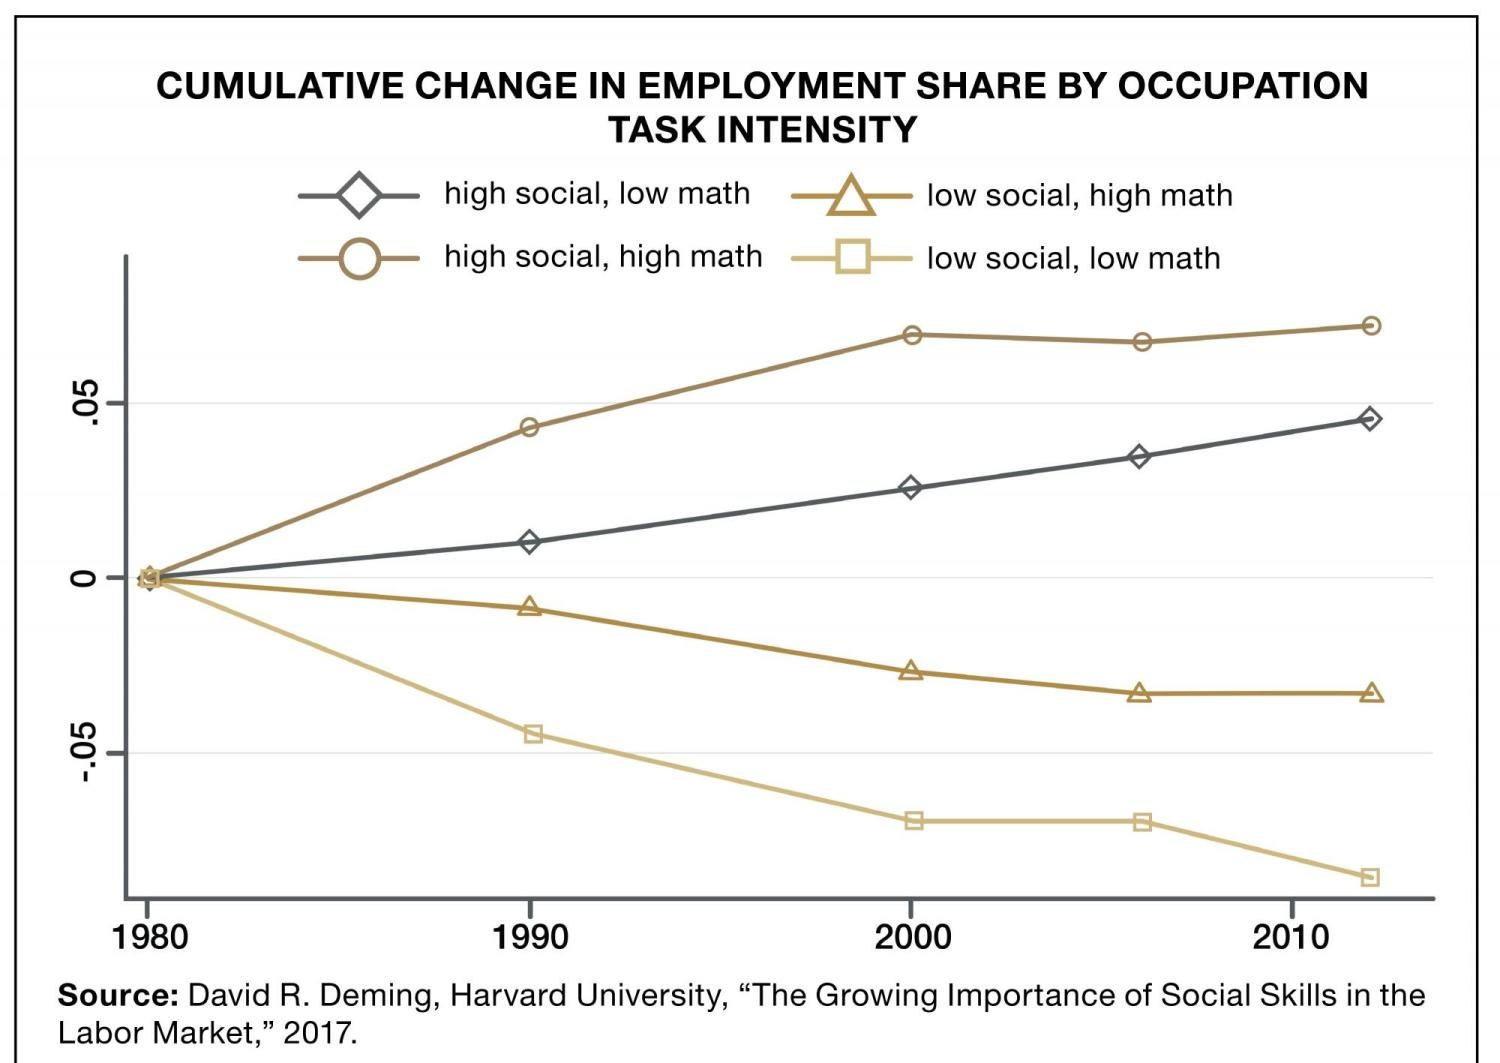 Graphic showing cumulative change in employment share by occupation task intensity